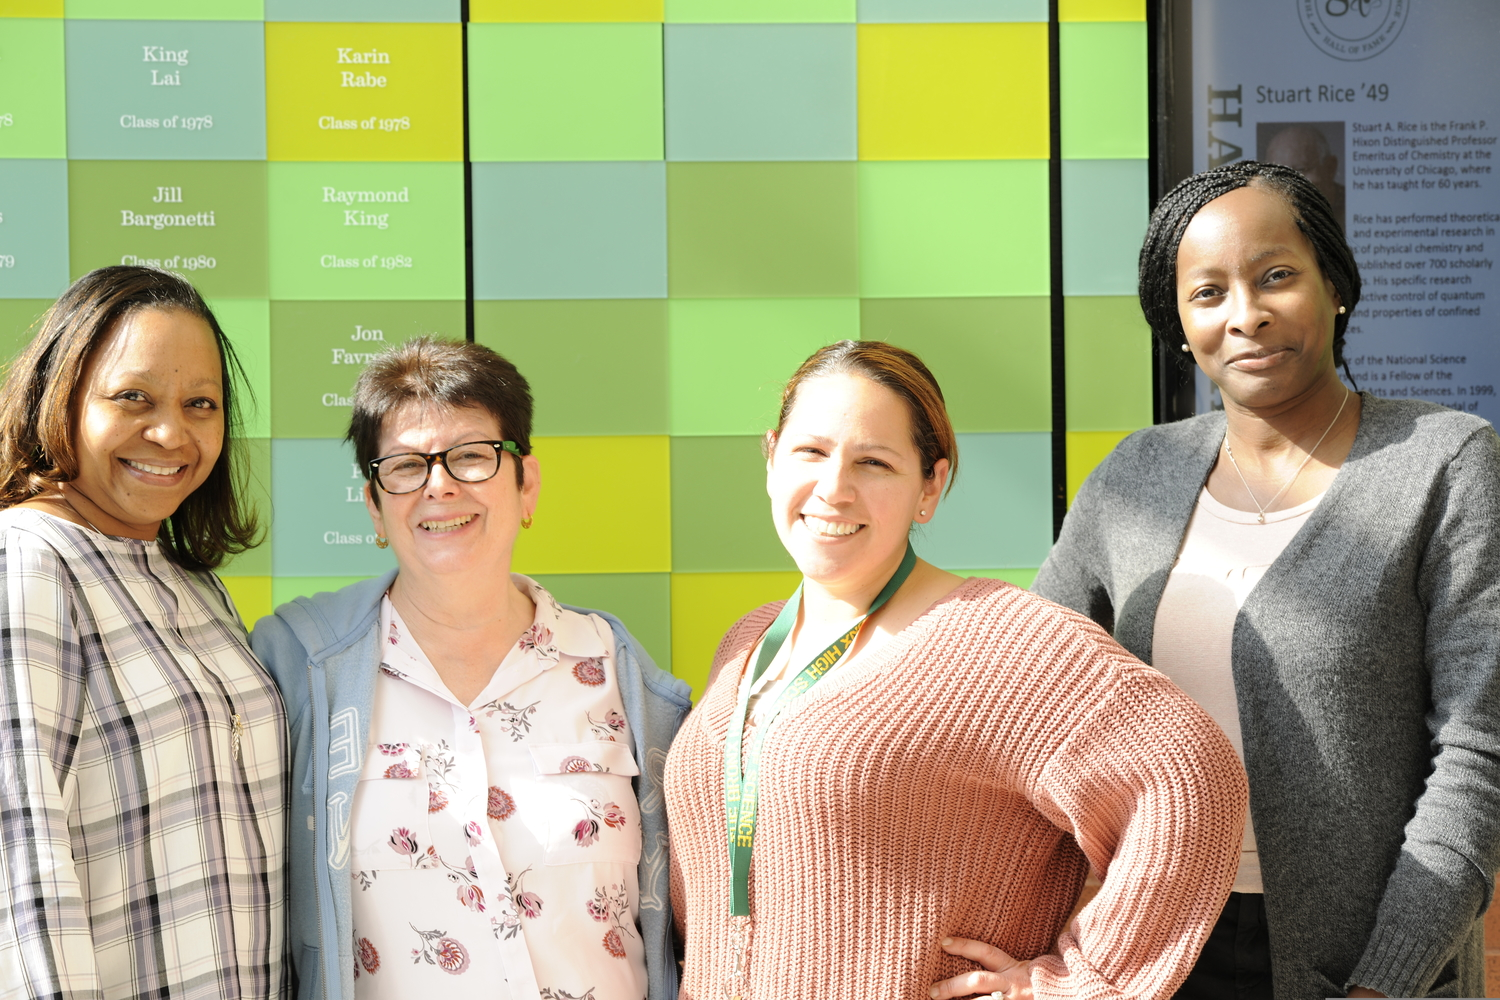 Despite starting at Bronx Science only a few months ago, Ms. Moraydda Rosado, Ms. Barbara Rivera-Berger, Ms. Danielle Heckman, and Ms. Sheree Ferguson are already knowledgeable about the Bronx Science community.